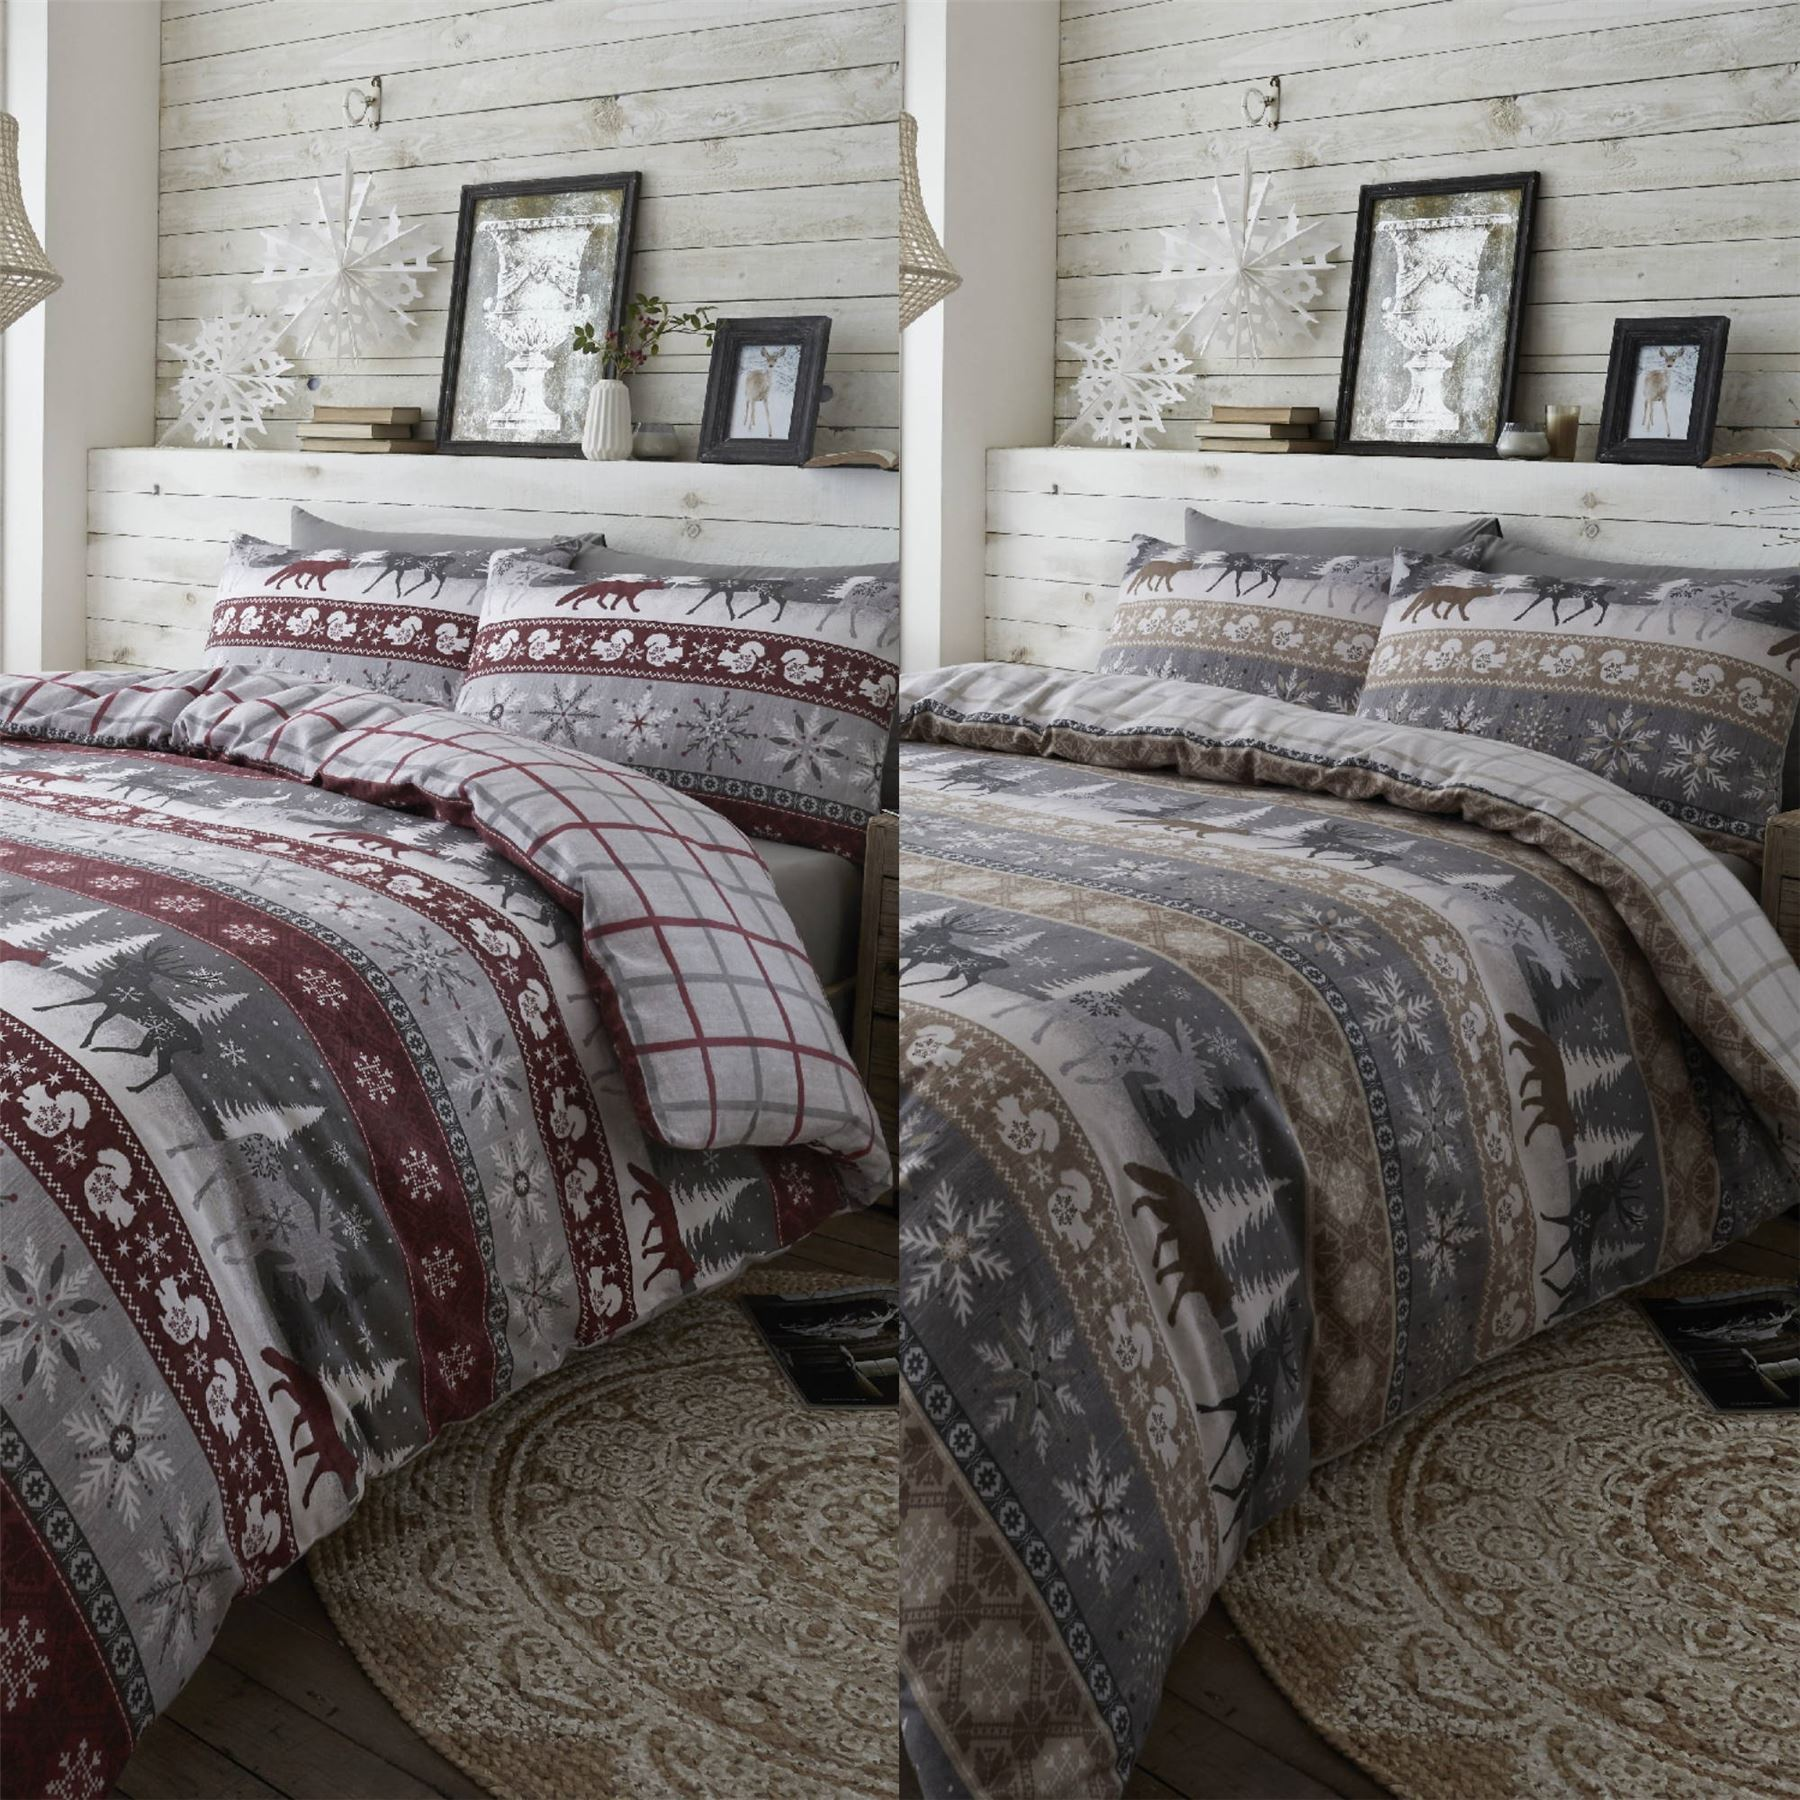 Hlc 100 Brushed Cotton Nordic Scandi Hygge Warm Reversible Duvet Cover Set Ebay